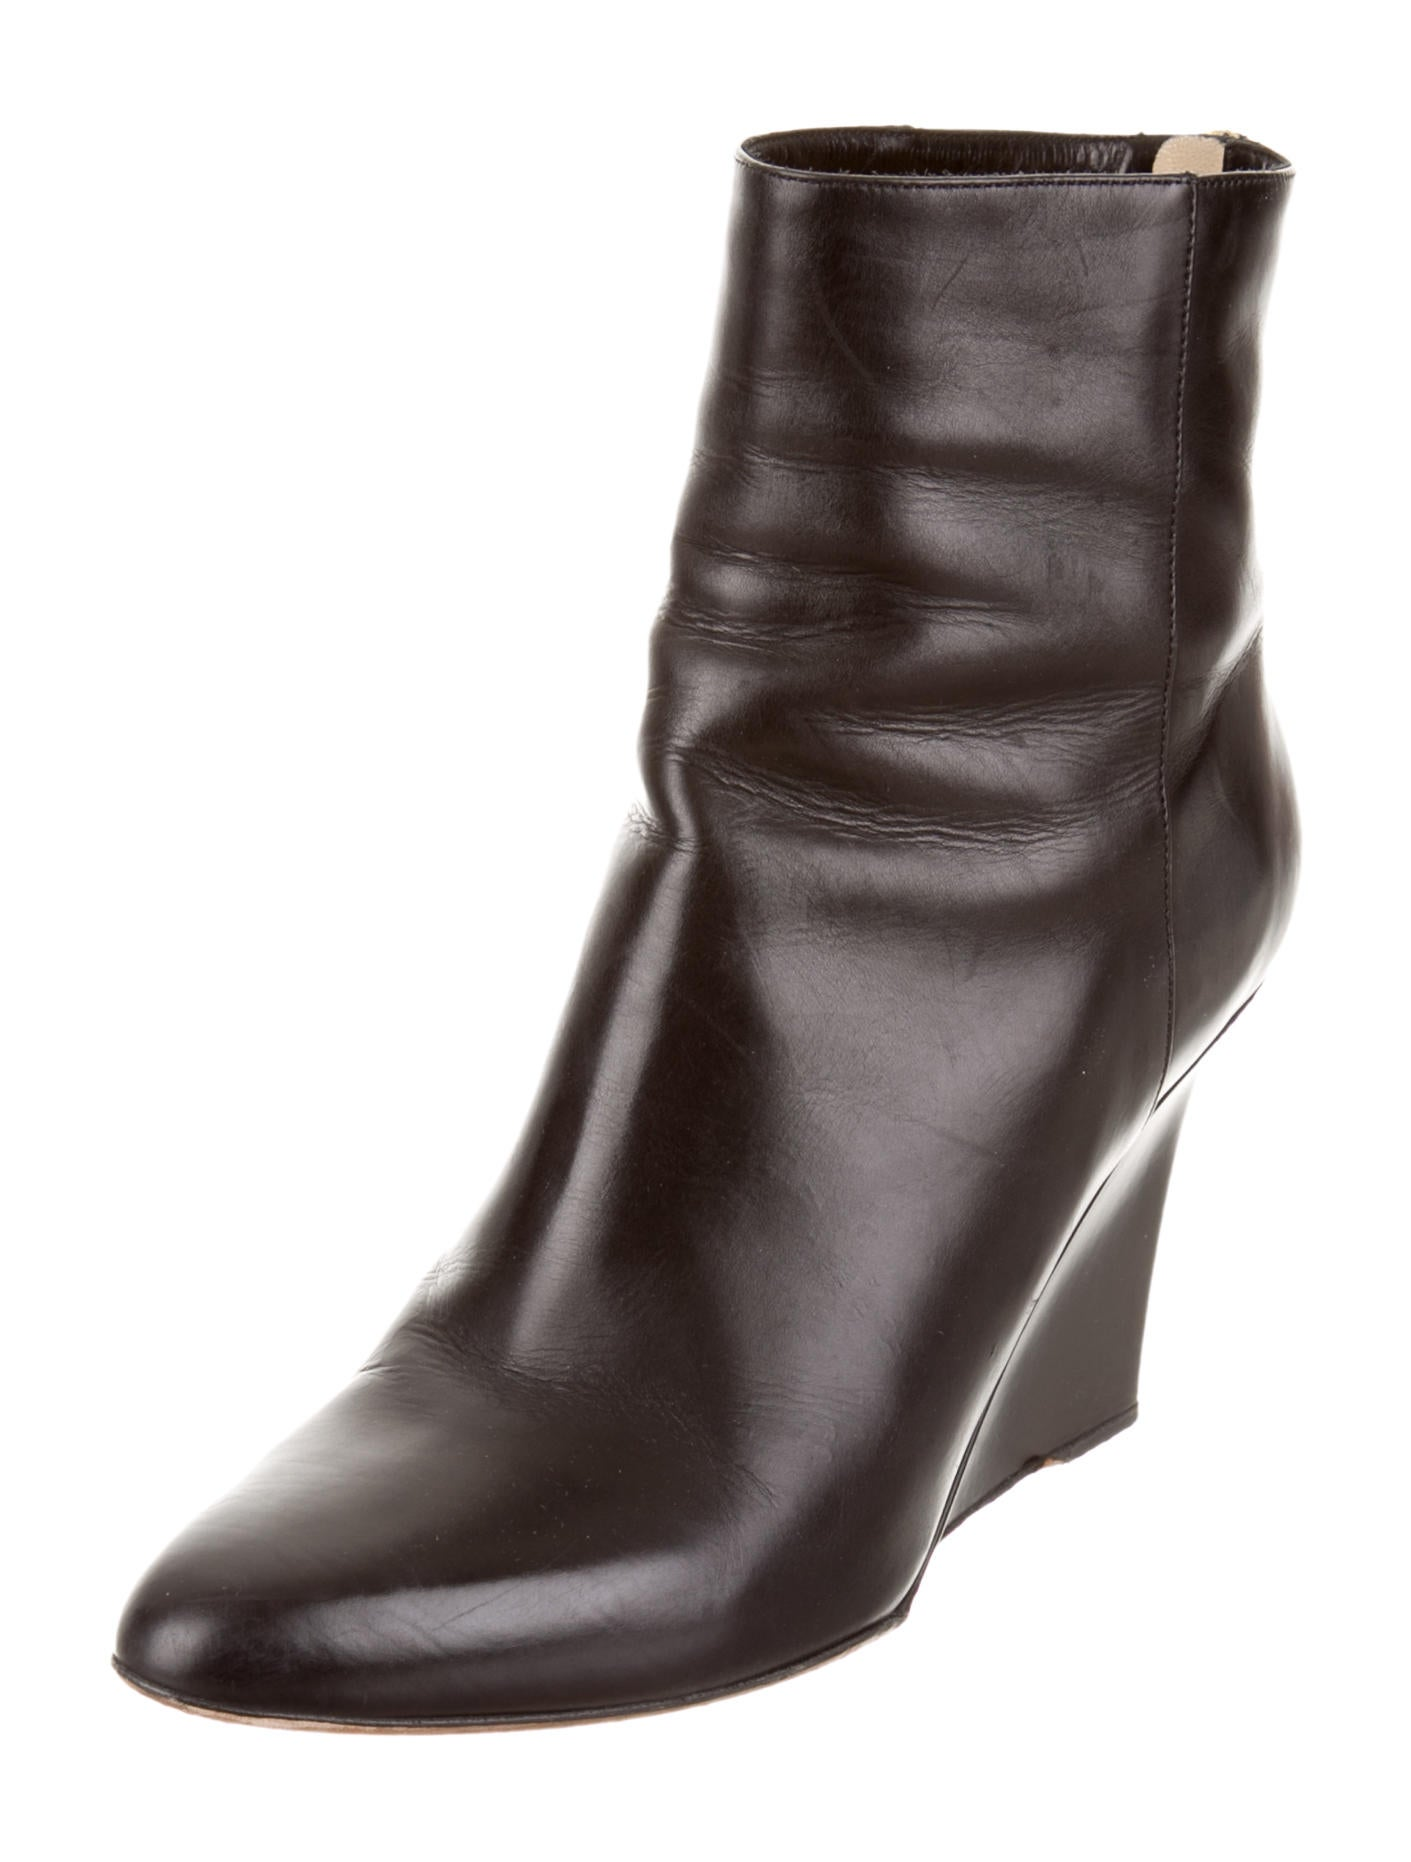 jimmy choo pointed toe wedge ankle boots shoes